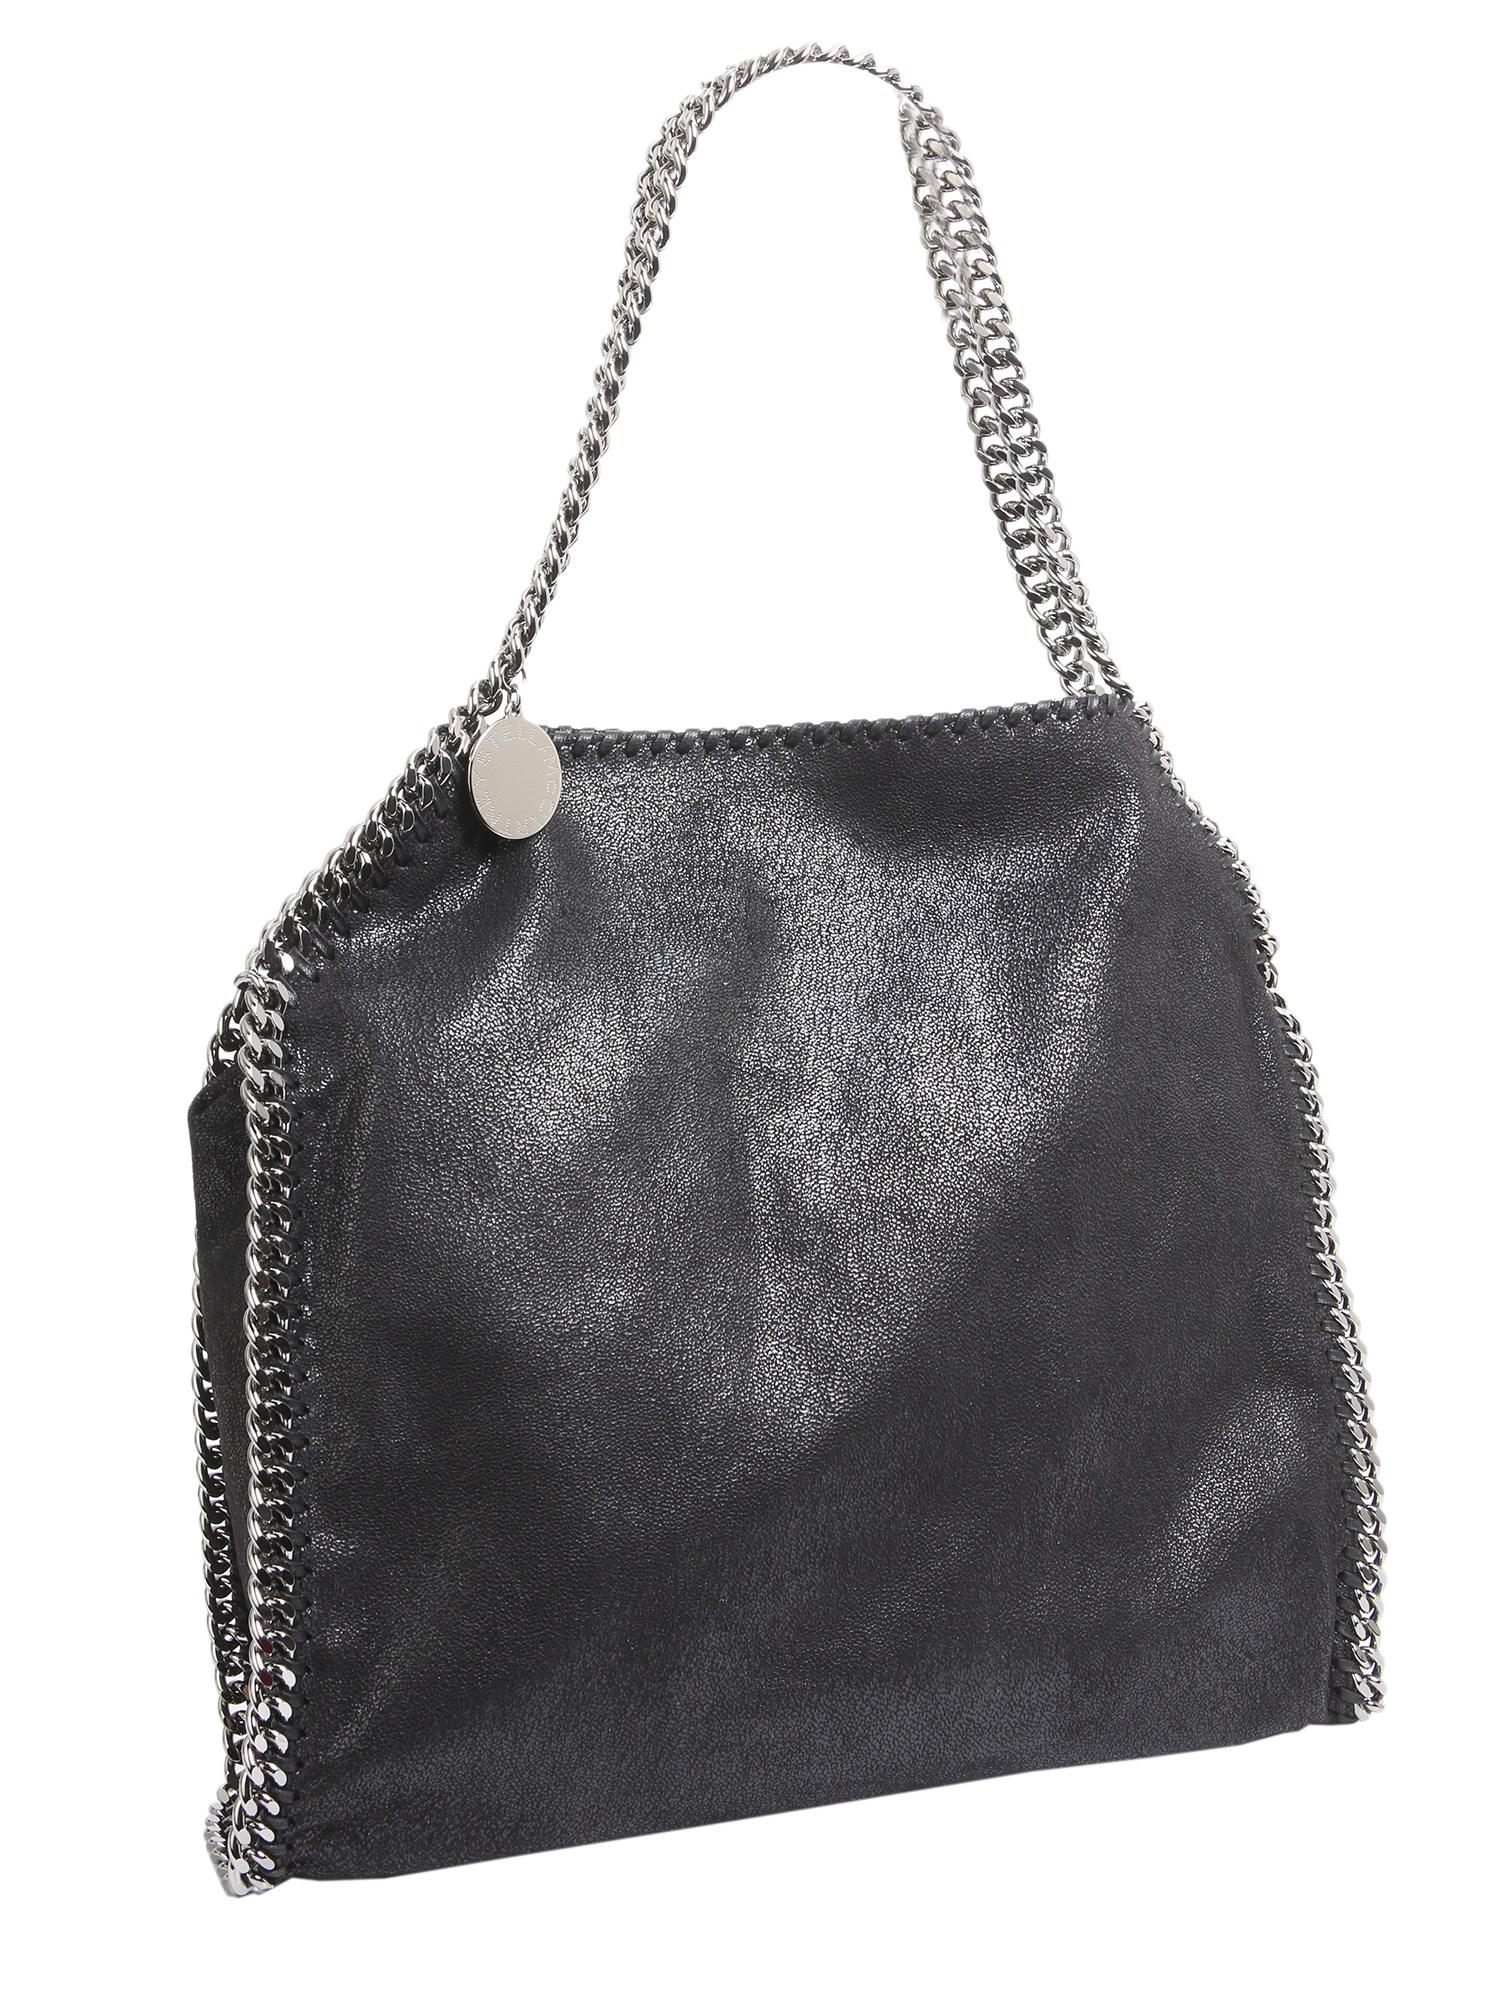 a7971f6343c Stella McCartney - Black Borsa Tote Small Falabella In Shaggy Deer - Lyst.  View fullscreen